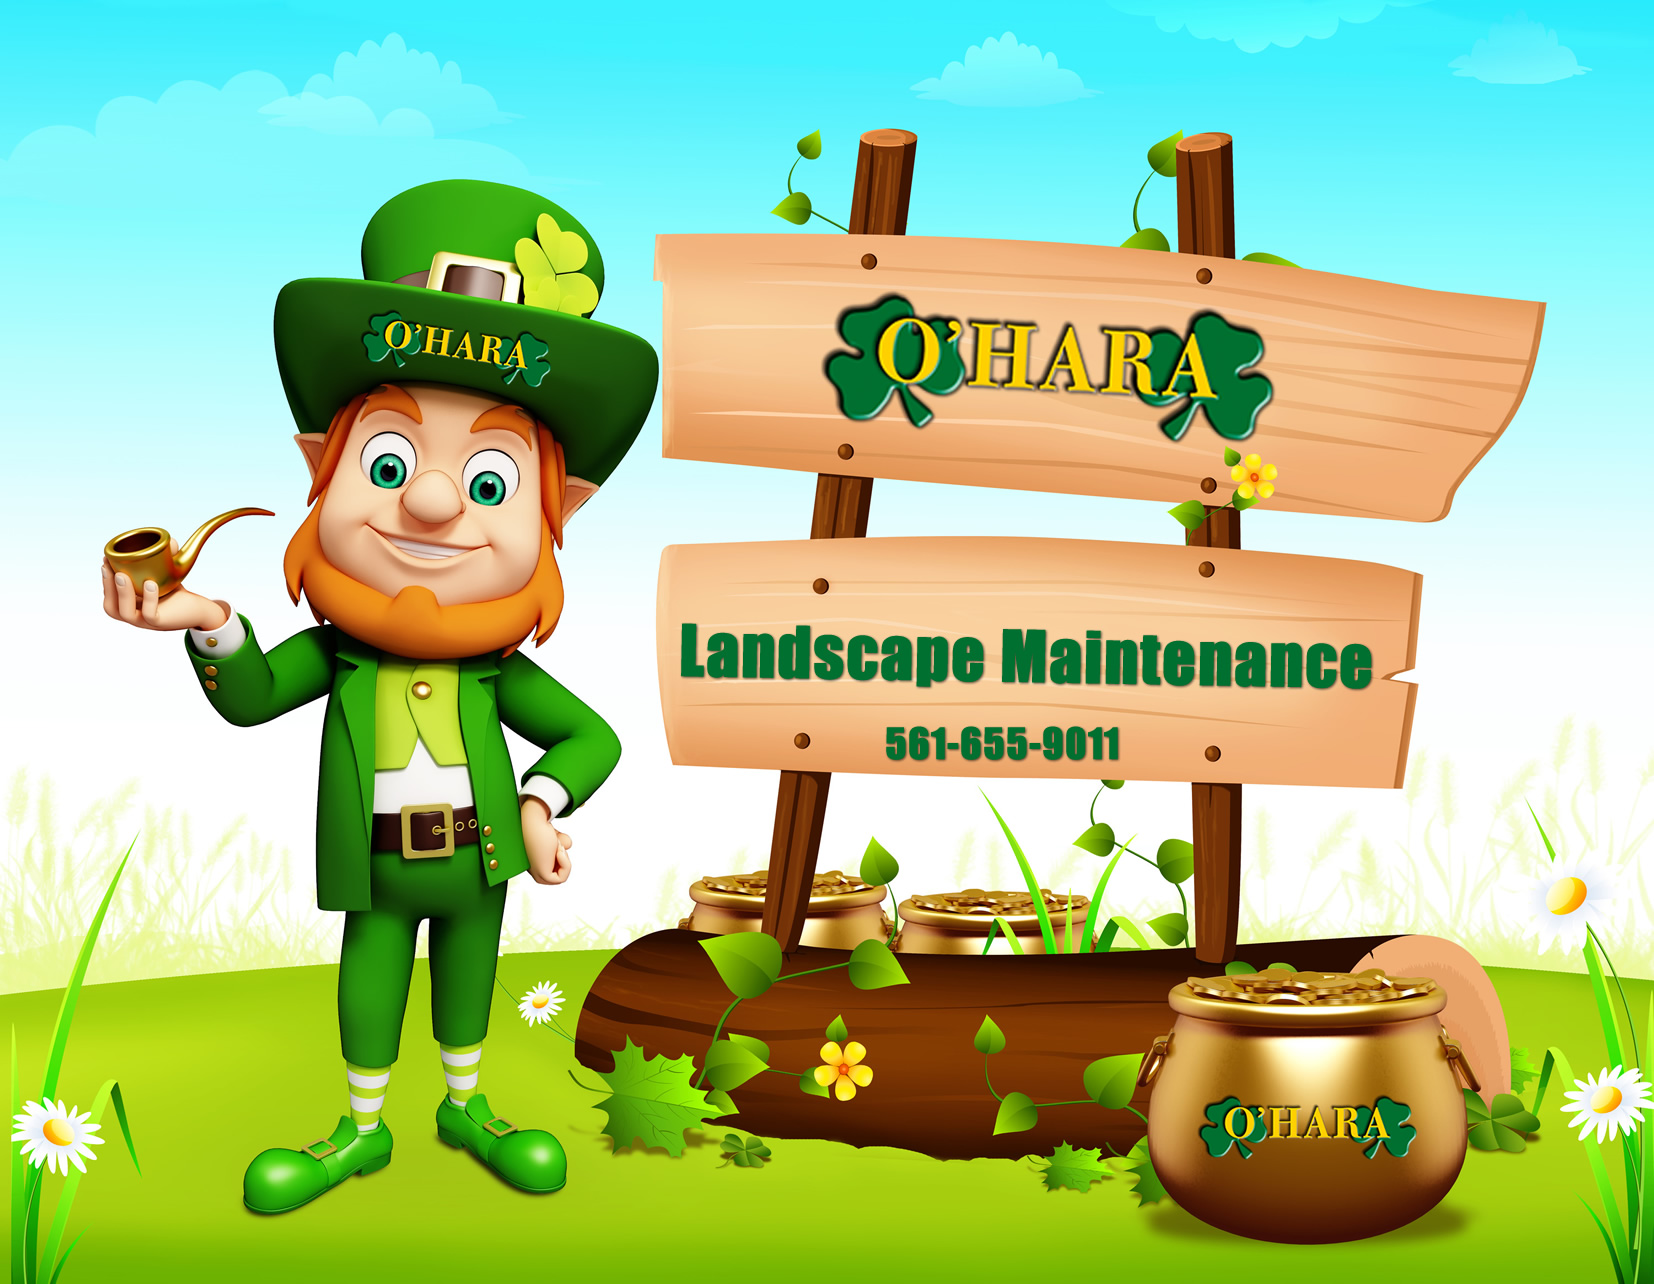 O'Hara Landscape and Maintenance Palm Beach County